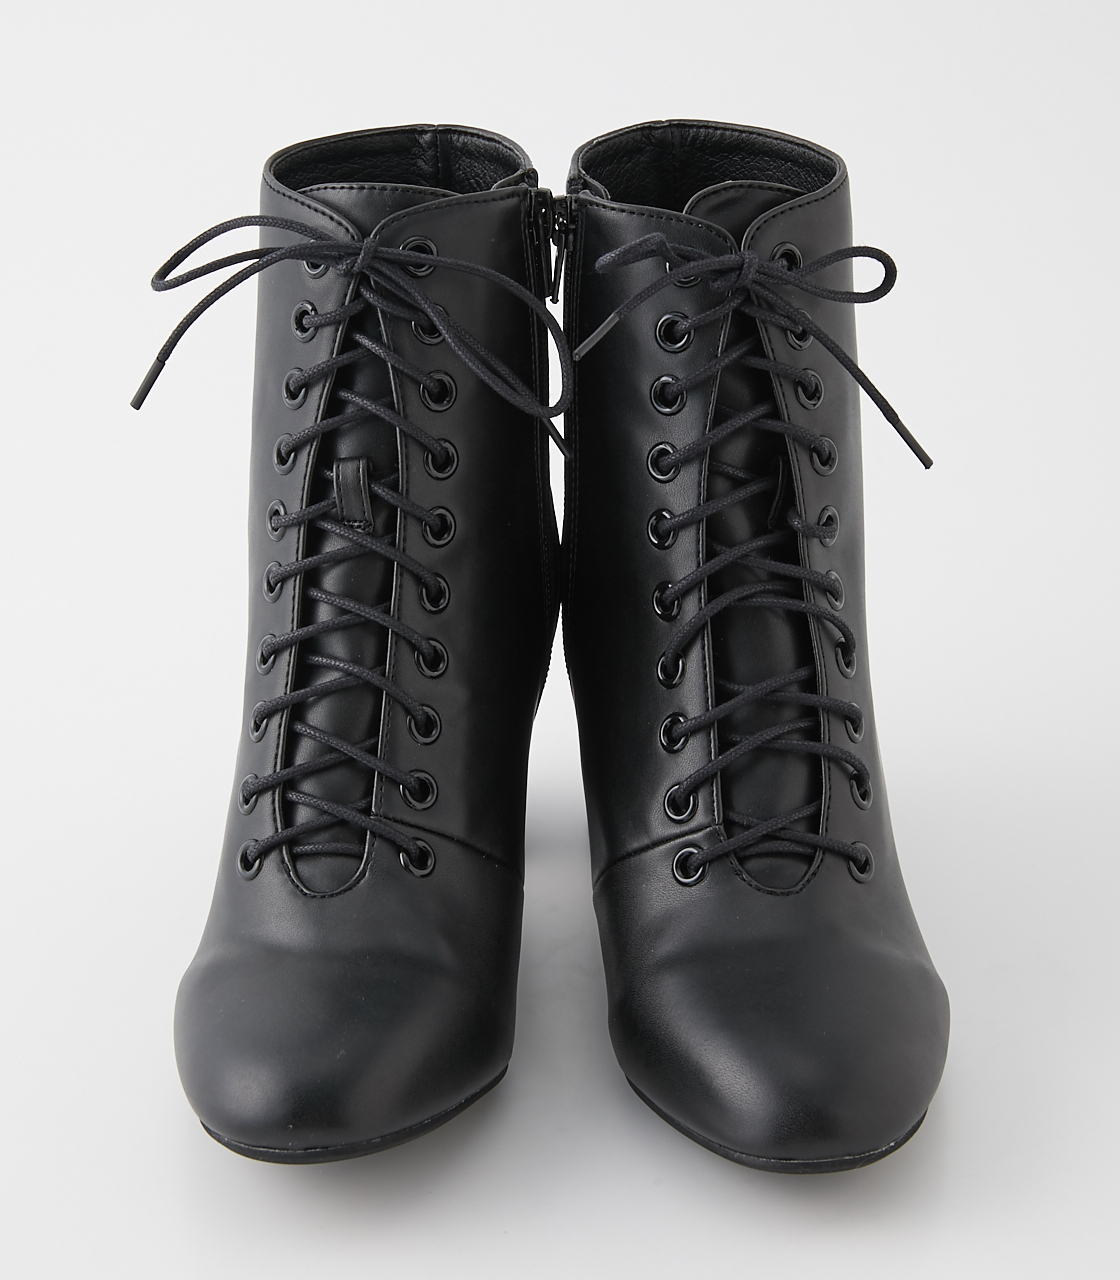 LACE UP HEEL BOOTS/レースアップヒールブーツ 詳細画像 BLK 3